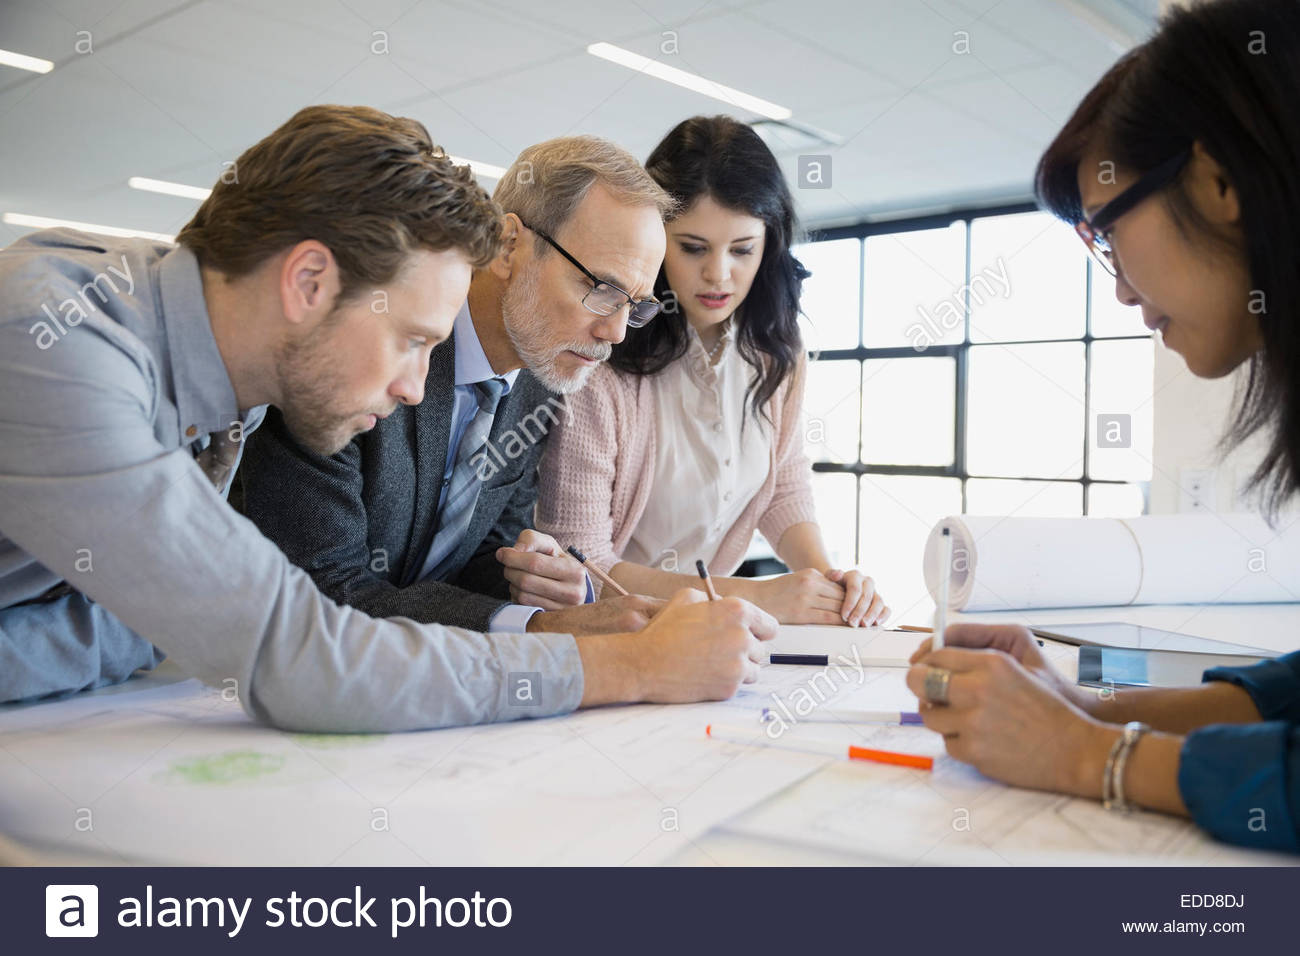 Architects drafting blueprints in office - Stock Image